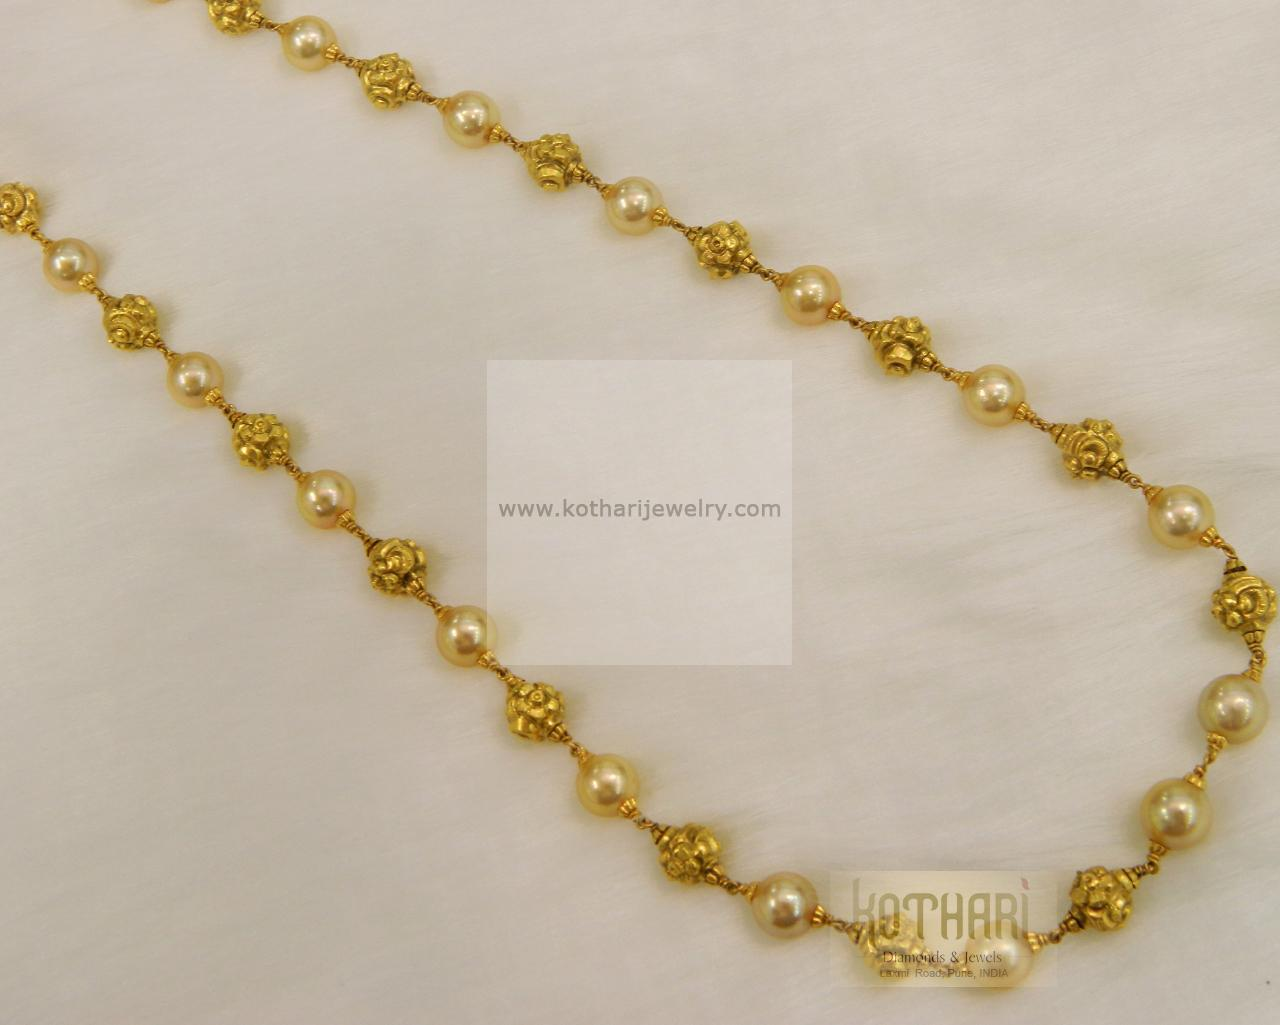 Necklaces / Harams - Gold Jewellery Necklaces / Harams (CH37682414 ...